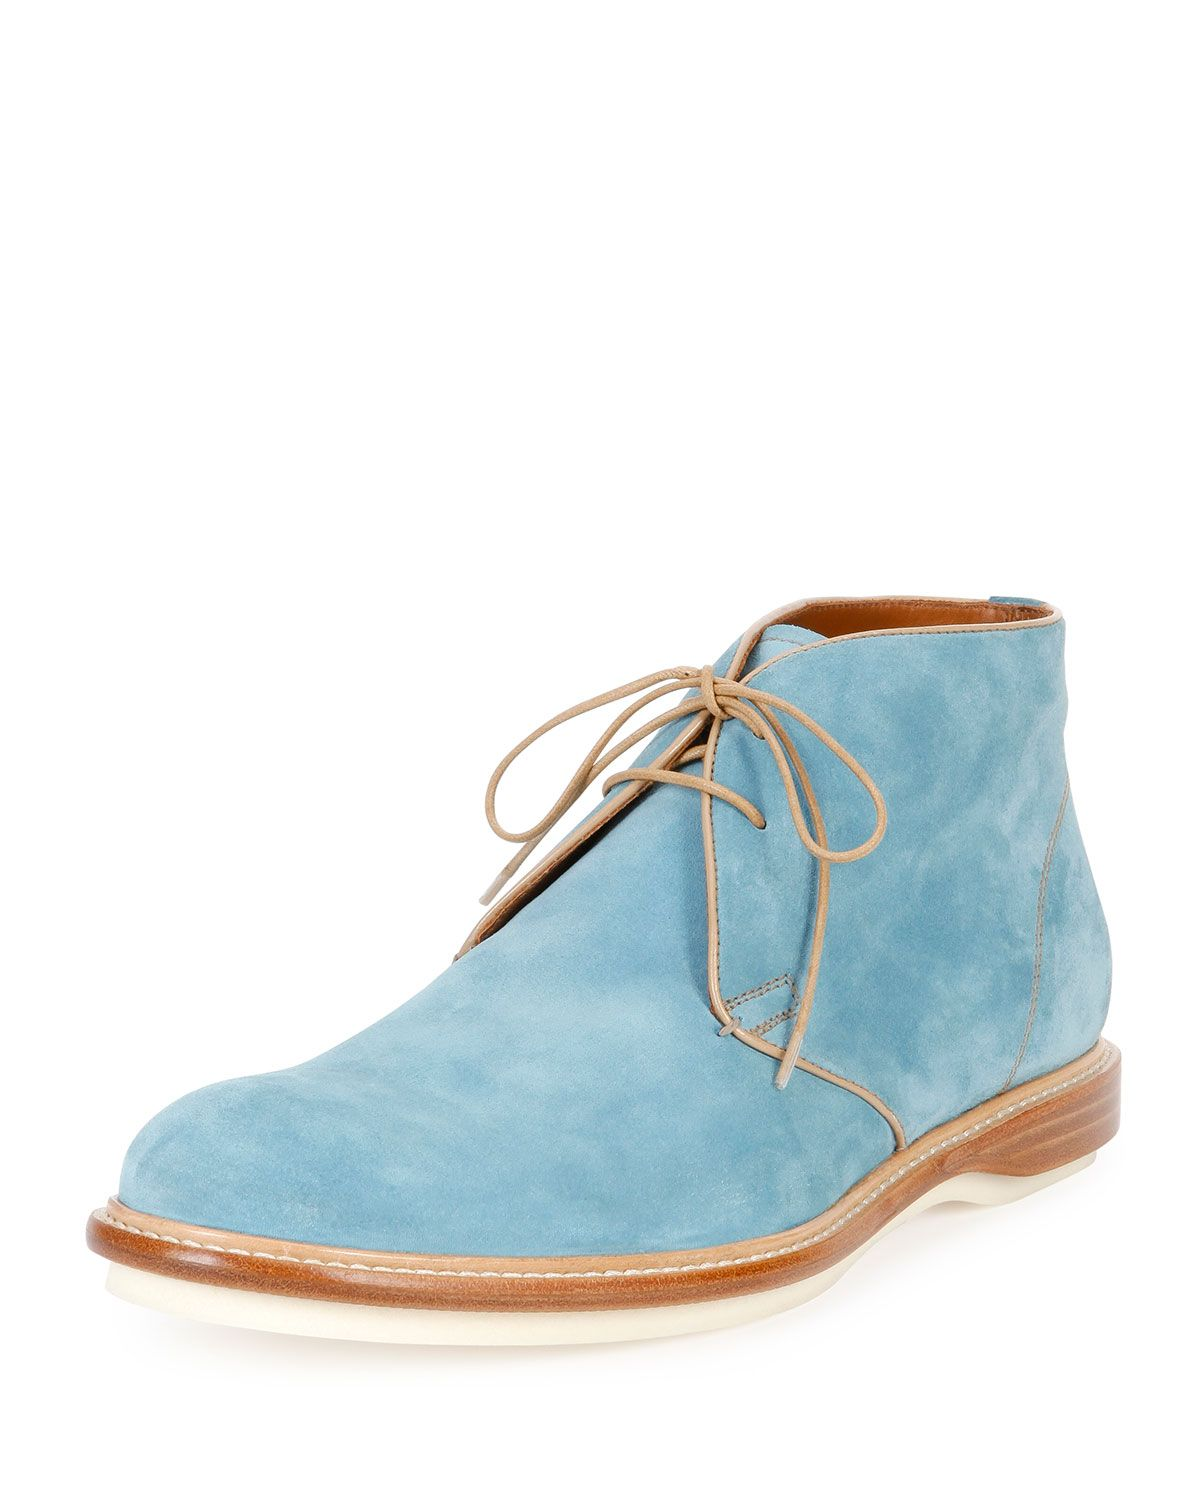 Bally Strauss Suede Lace Up Boot Blue Boots Shoe Boots Mens Fashion Shoes